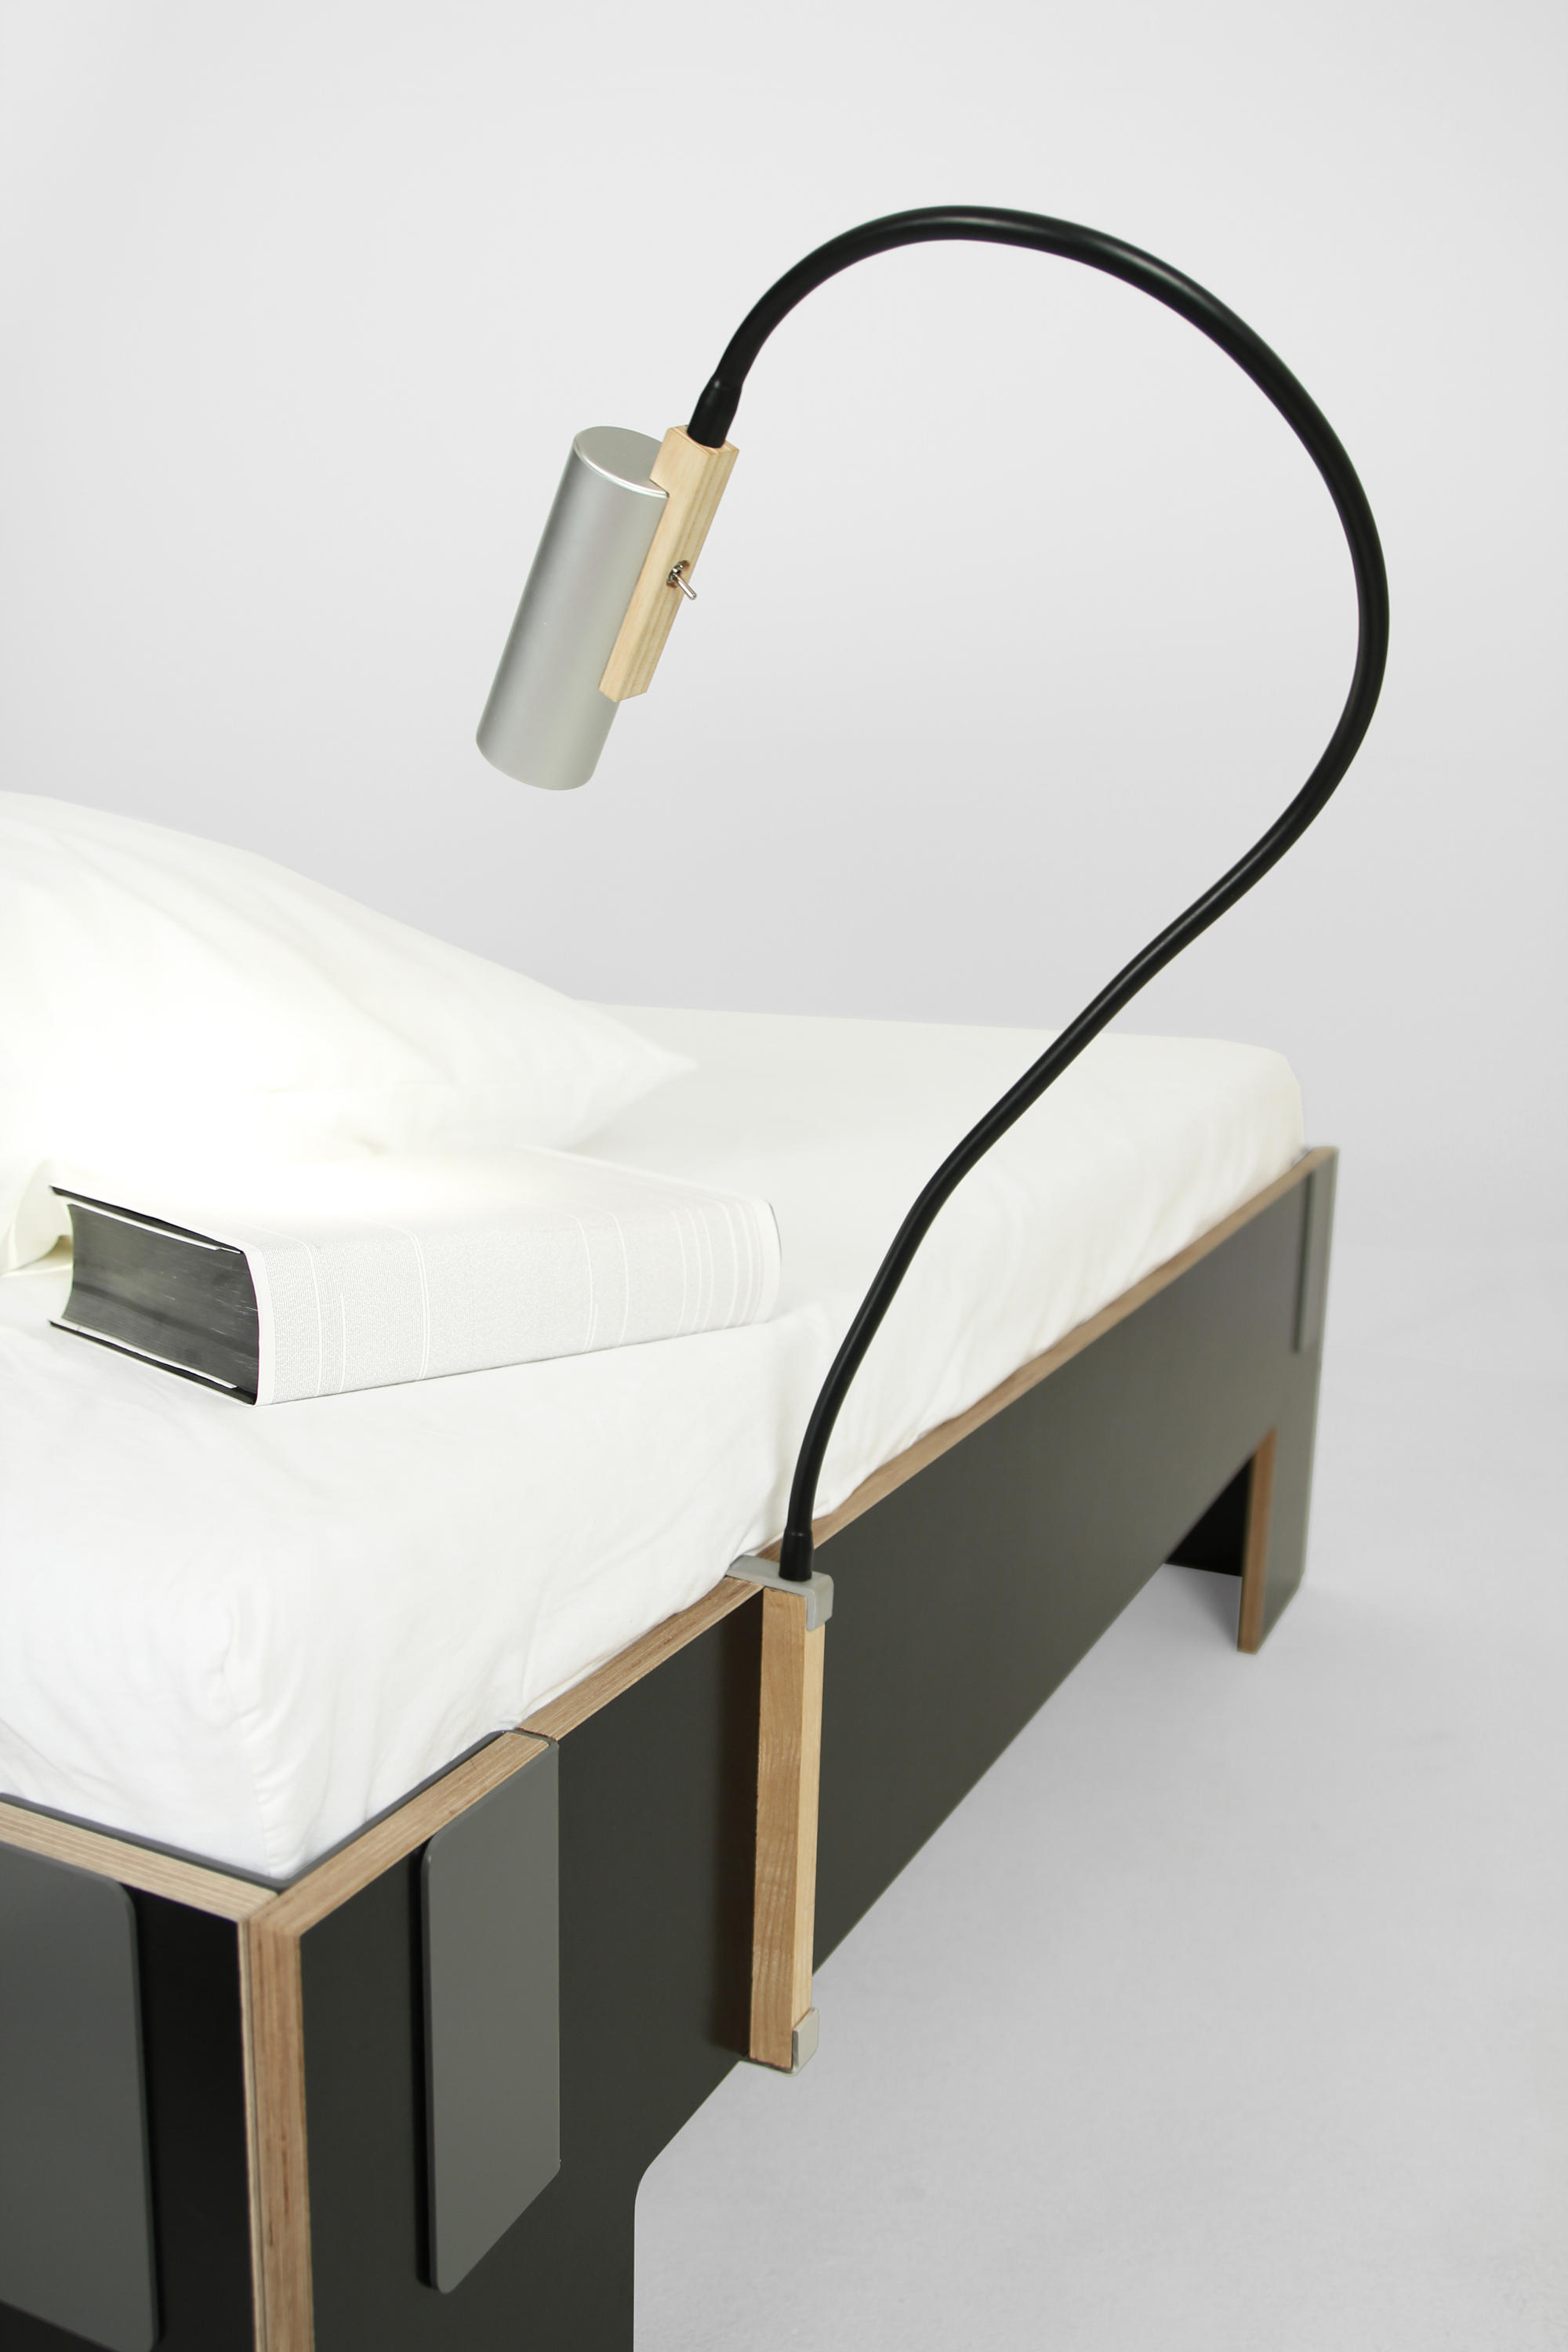 Chaise Nils La Funsel Table Lights From Moormann Architonic